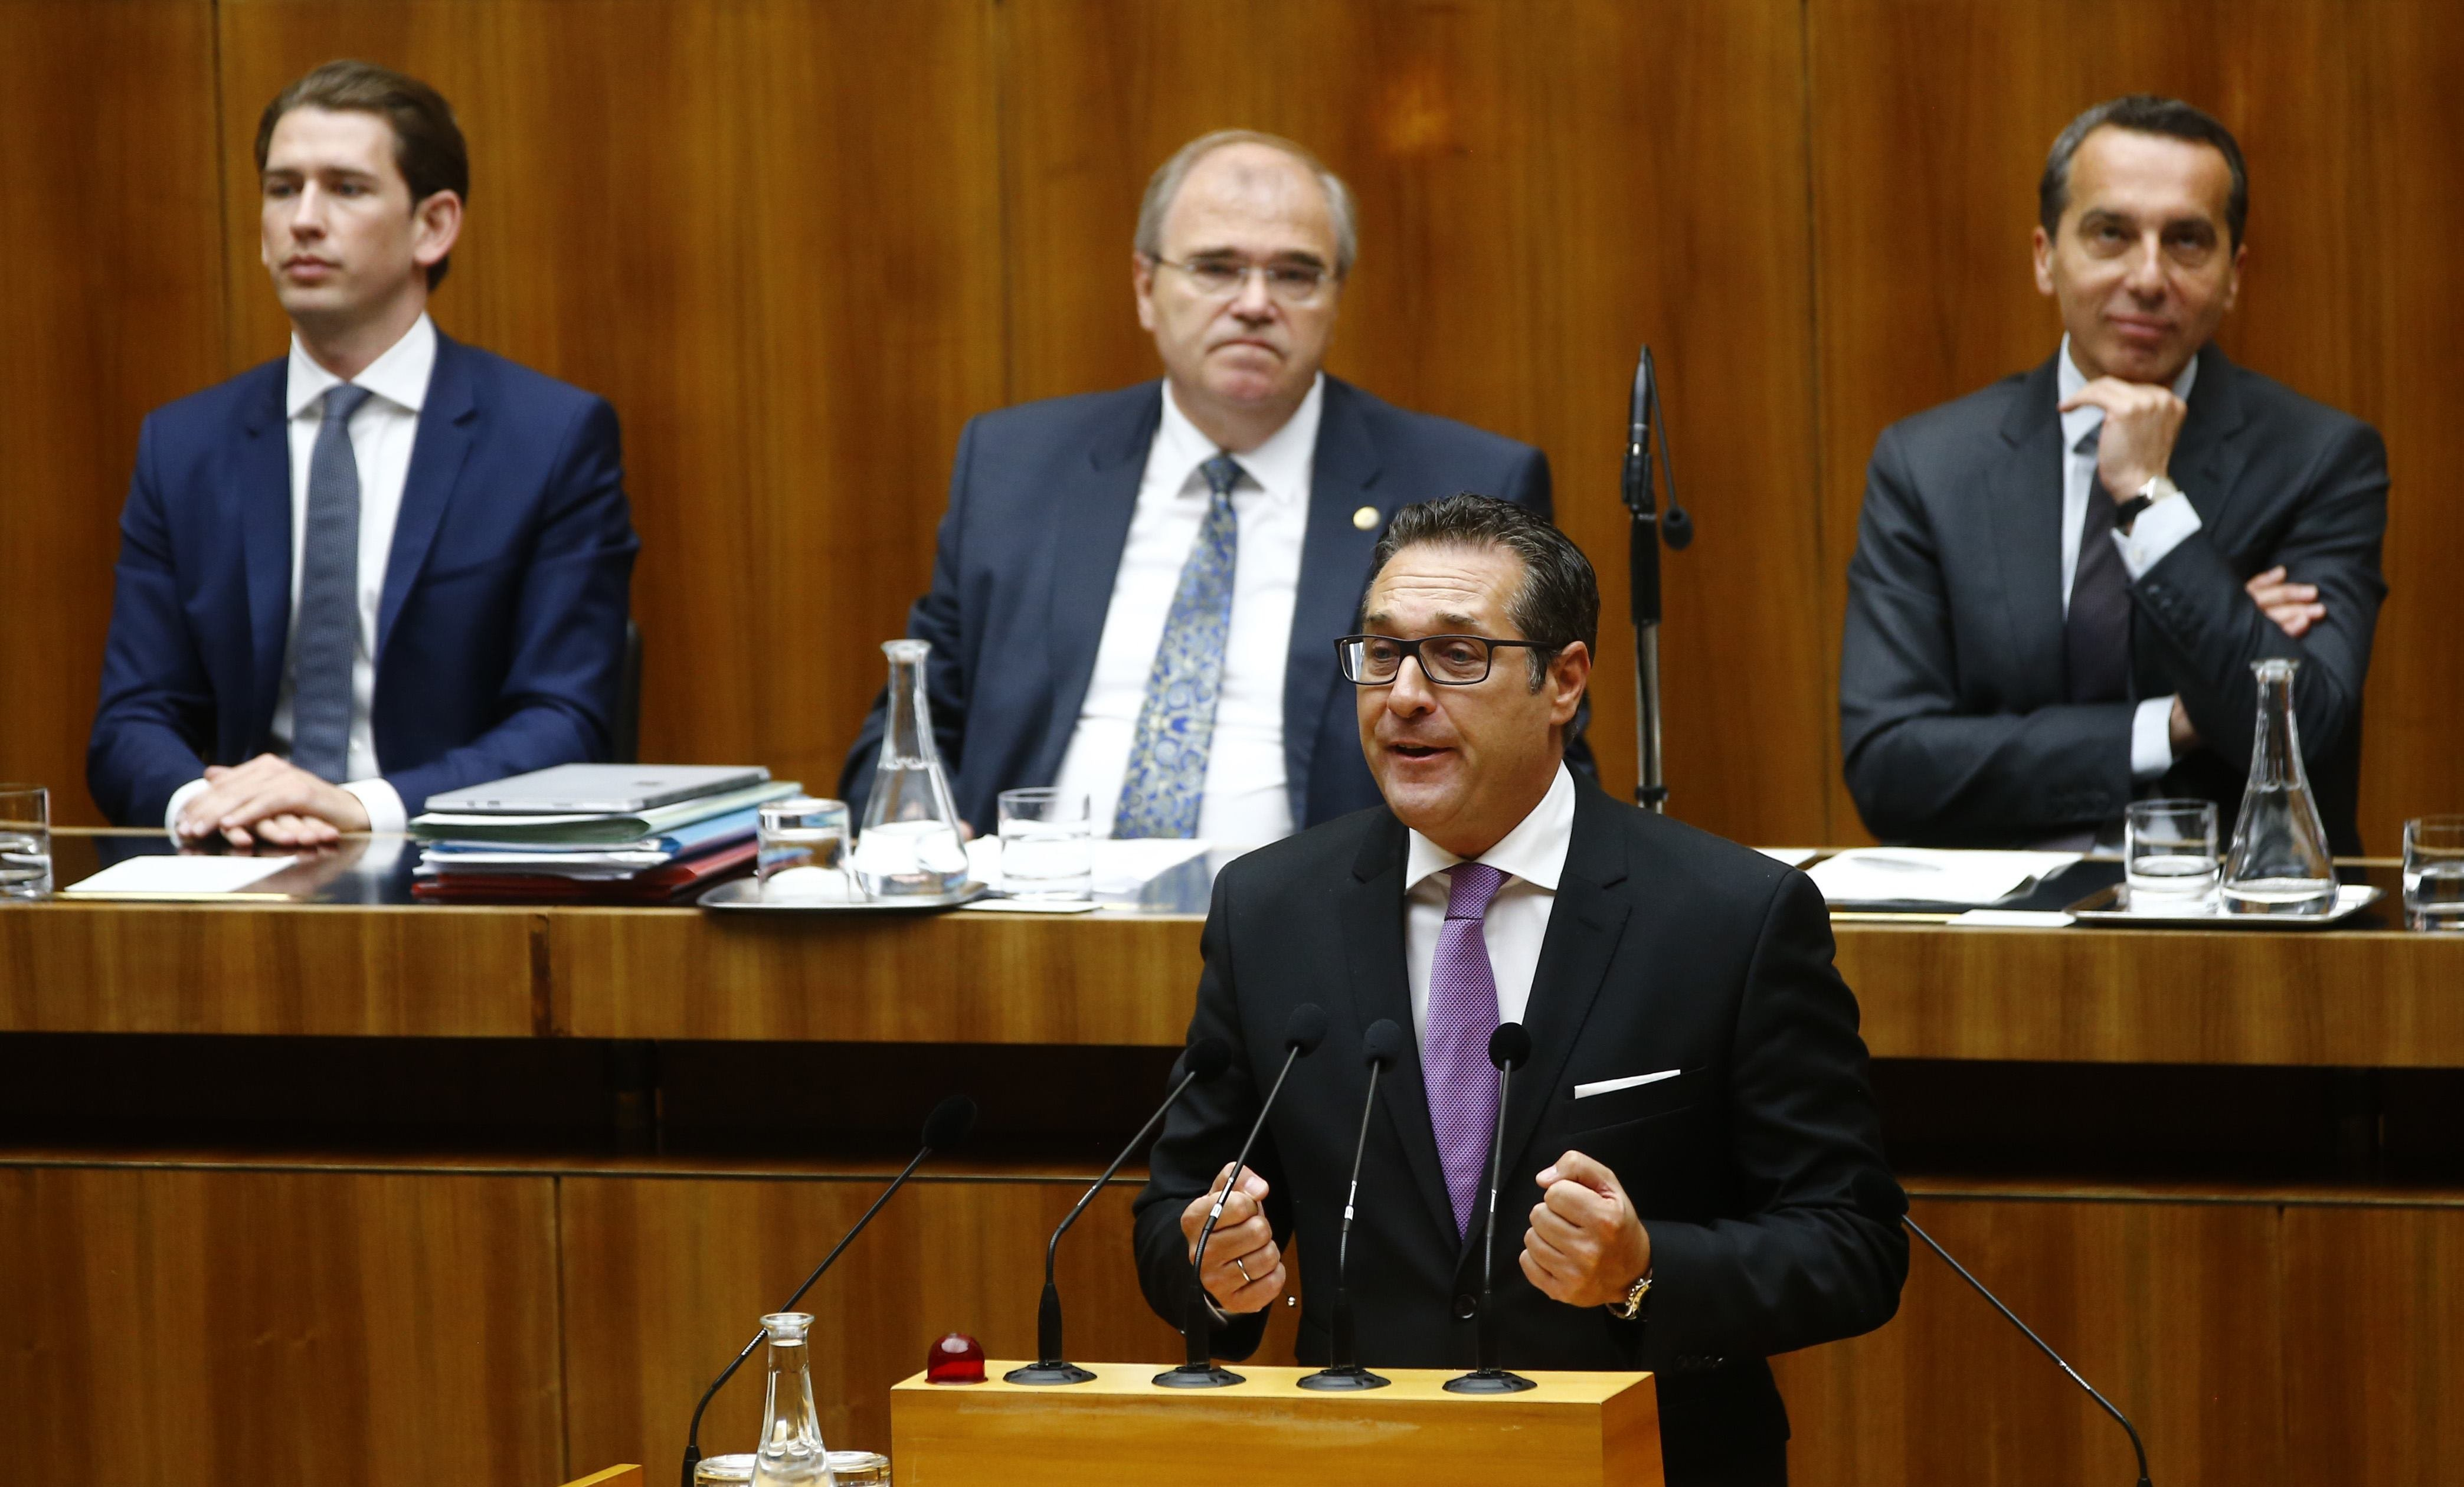 Head of Austrian Freedom Party (FPOe) Heinz-Christian Strache delivers a speech in front of Austria's Foreign Minister Sebastian Kurz, Justice Minister Wolfgang Brandstetter and Chancellor Christian Kern (L-R) during a session of the parliament in Vienna, Austria, May 16, 2017.